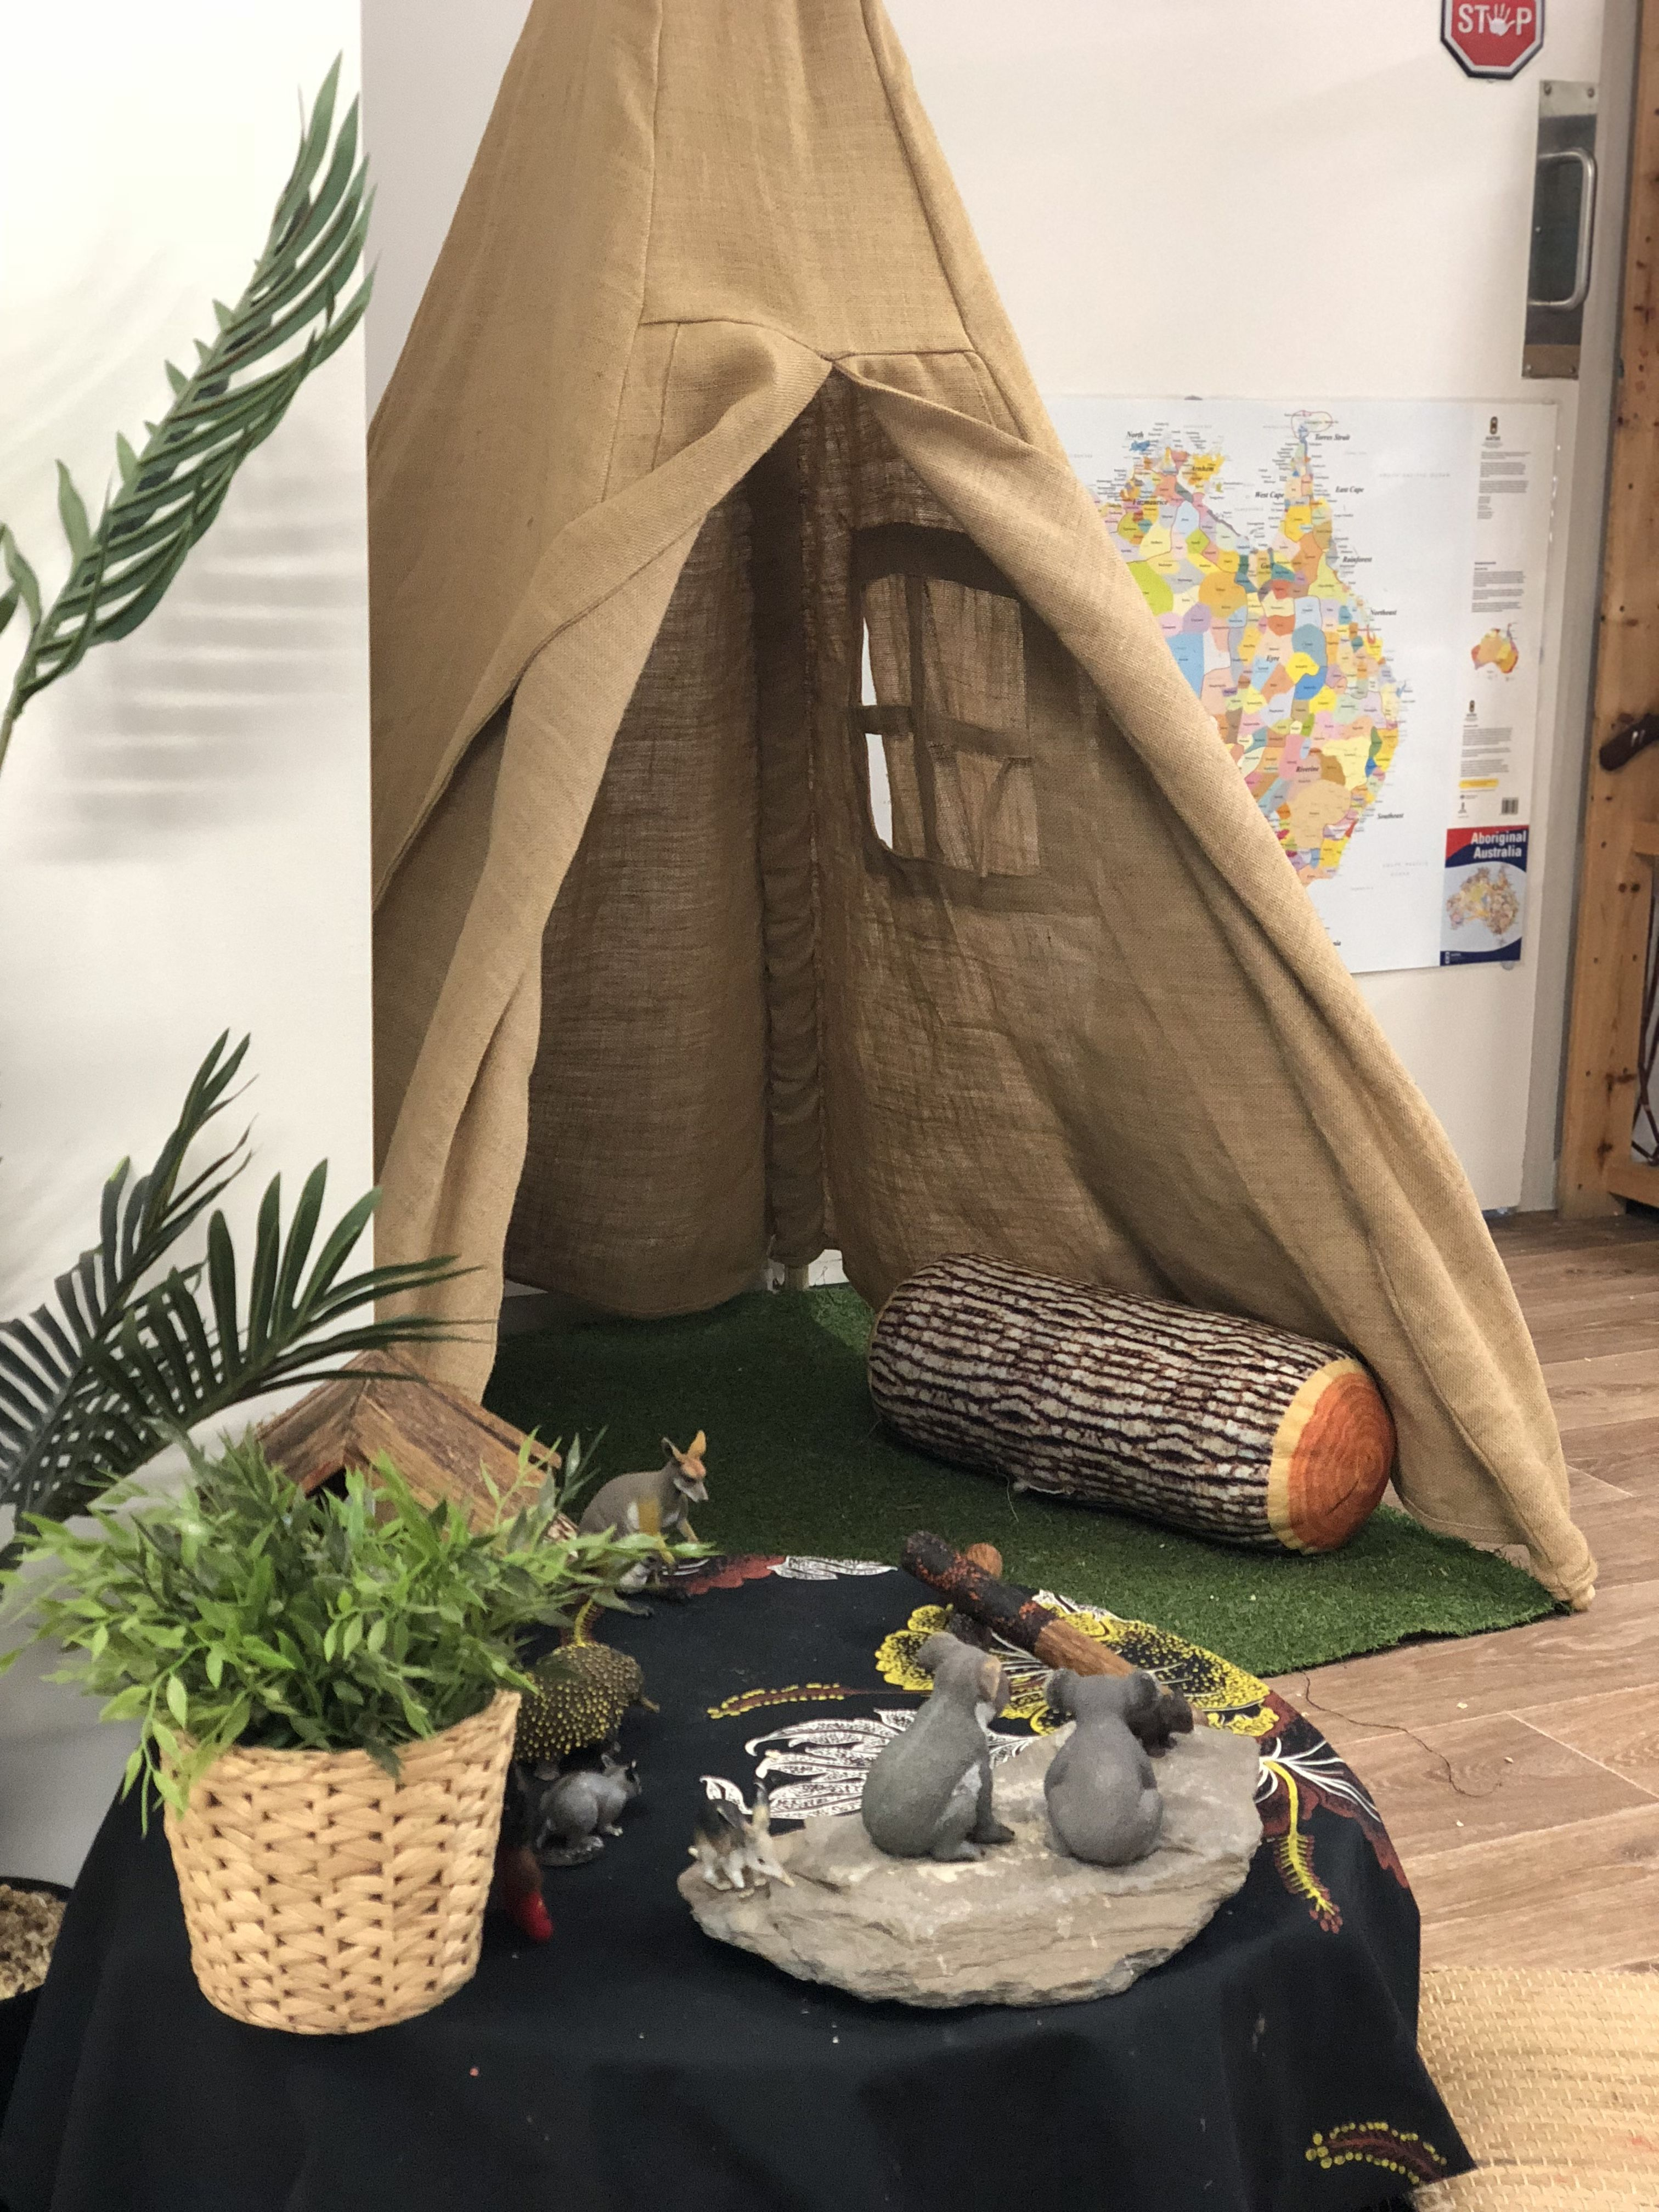 Australia Camping Aboriginal Quiet Space Early Childhood